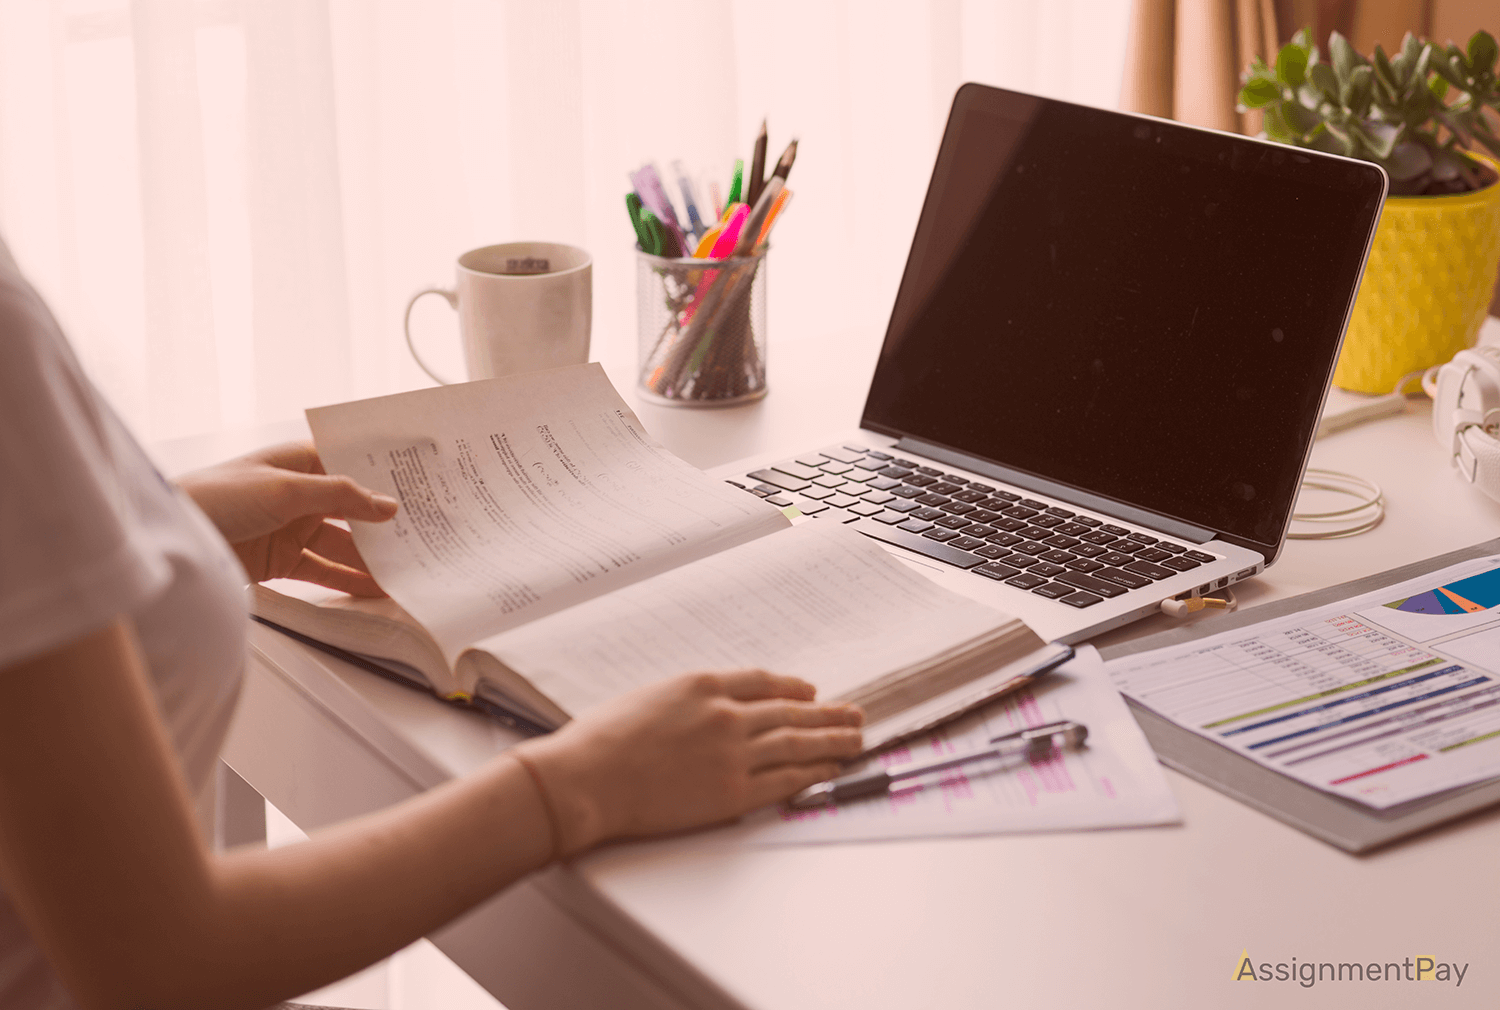 027 Persuasive Research Paper Topics About Beautiful Animals Full